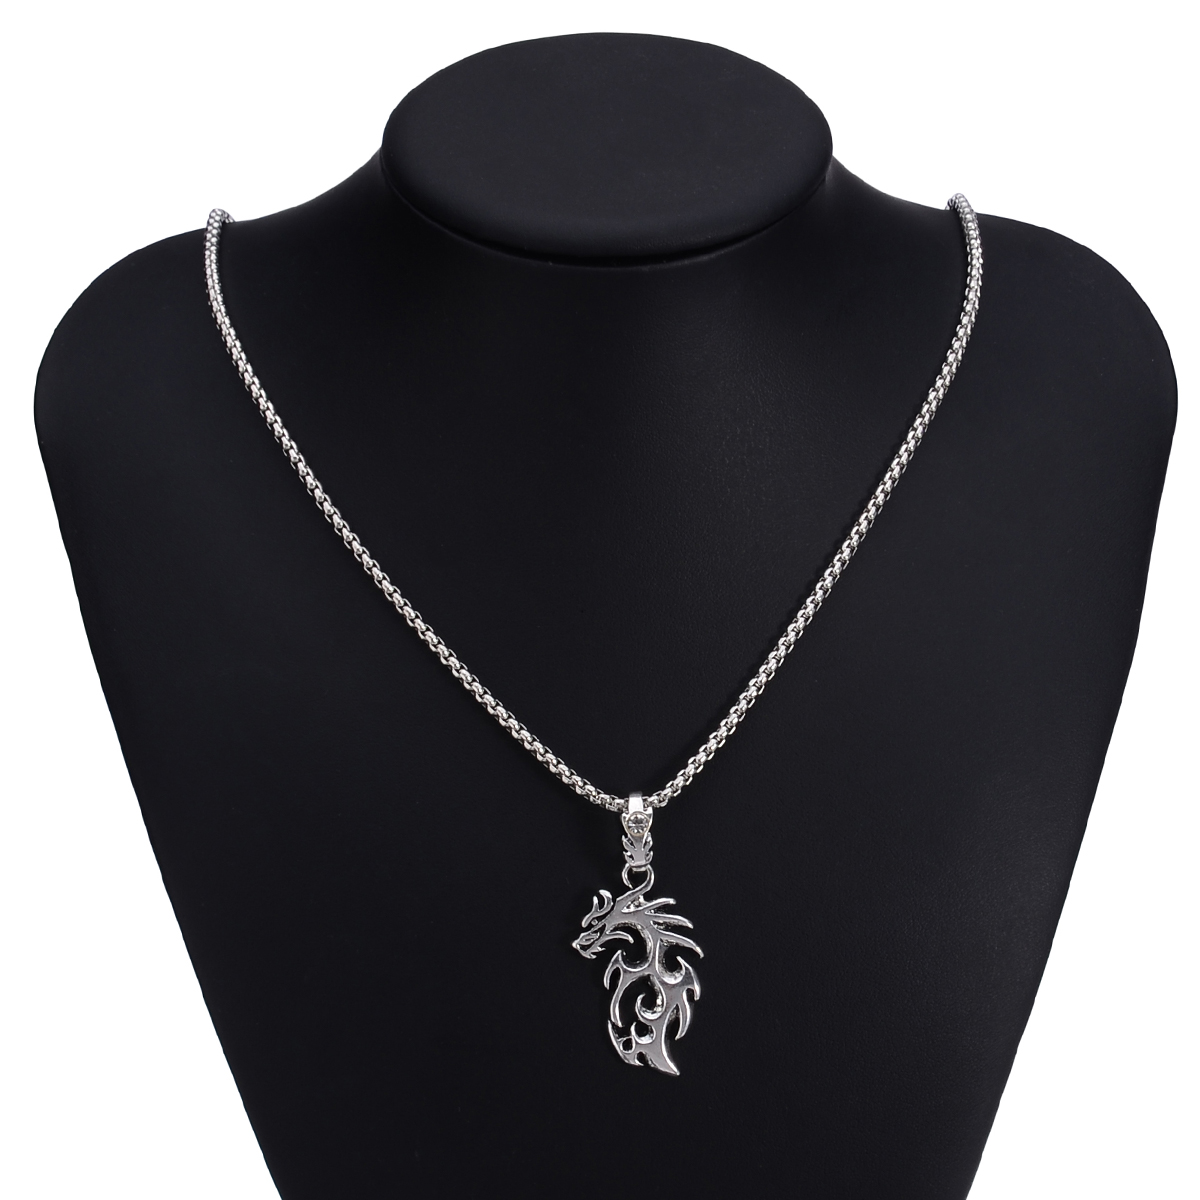 Shellhard Fashion Men Stainless Steel Jewelry Unique Antique Dragon Pendant Necklace Chain Silver Gold Drop Neckalce erkek kolye